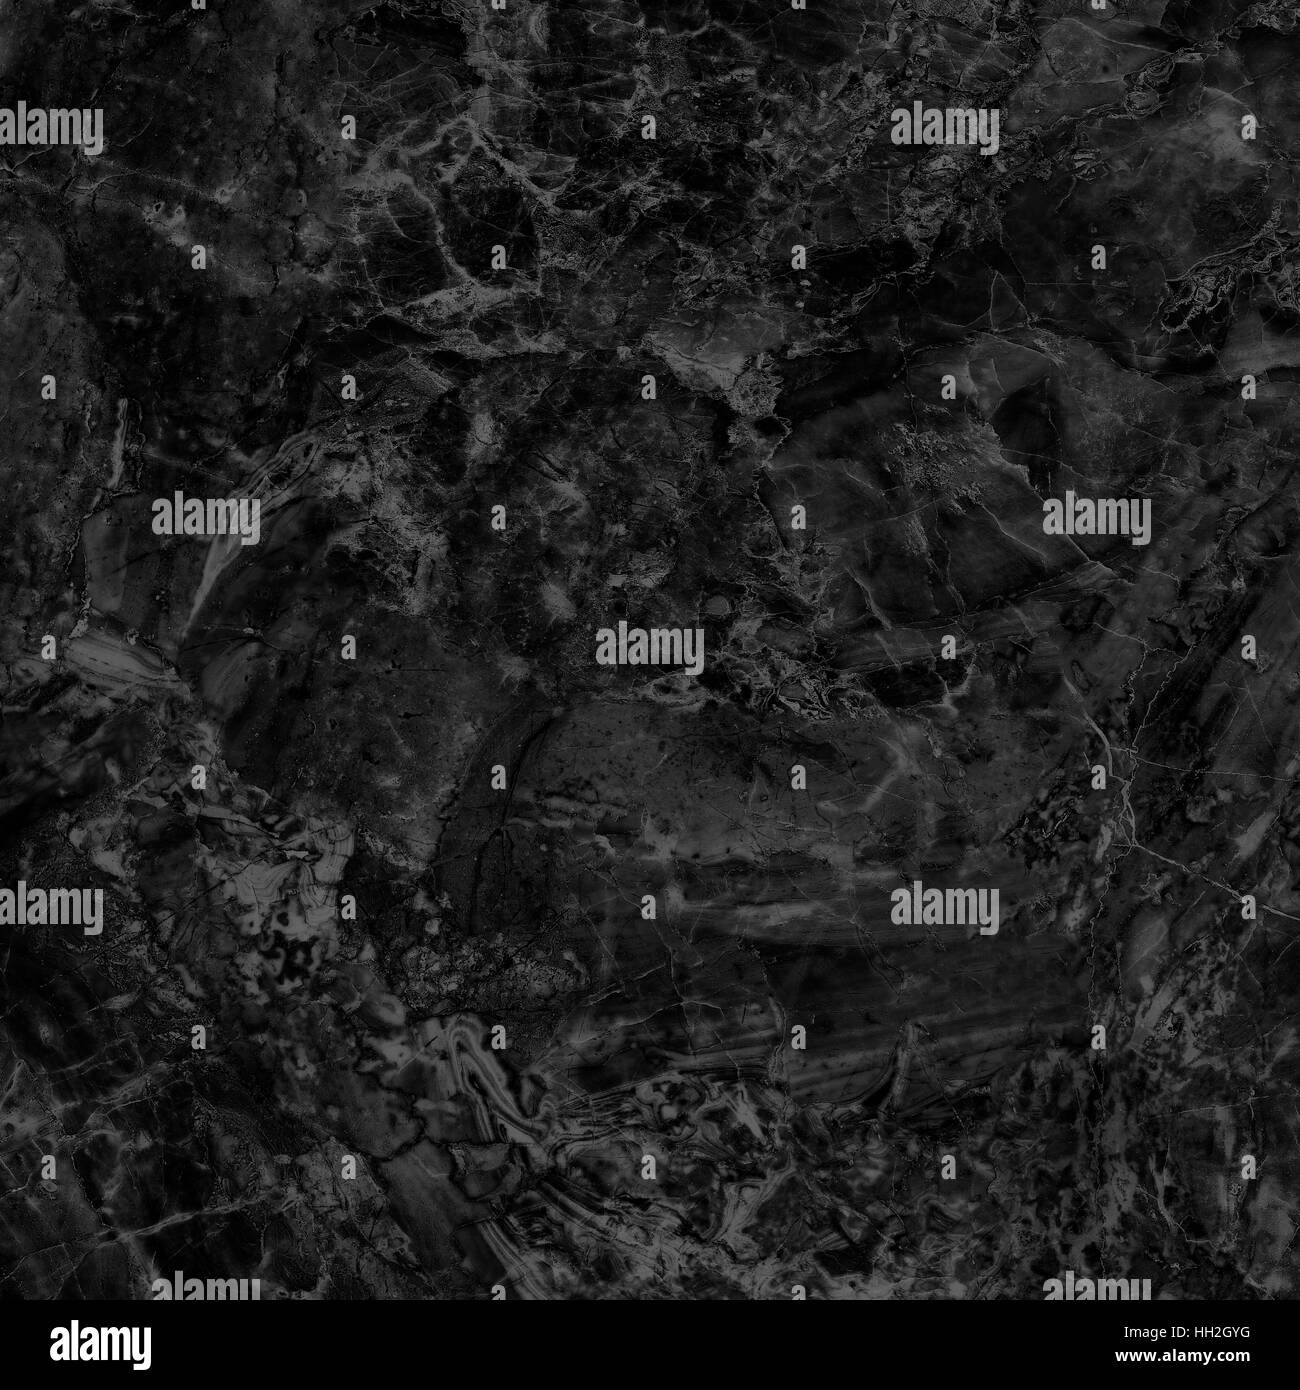 Black marble texture Wallpaper Black Marble Texture Background high Resolution Scan Alamy Black Marble Texture Background high Resolution Scan Stock Photo